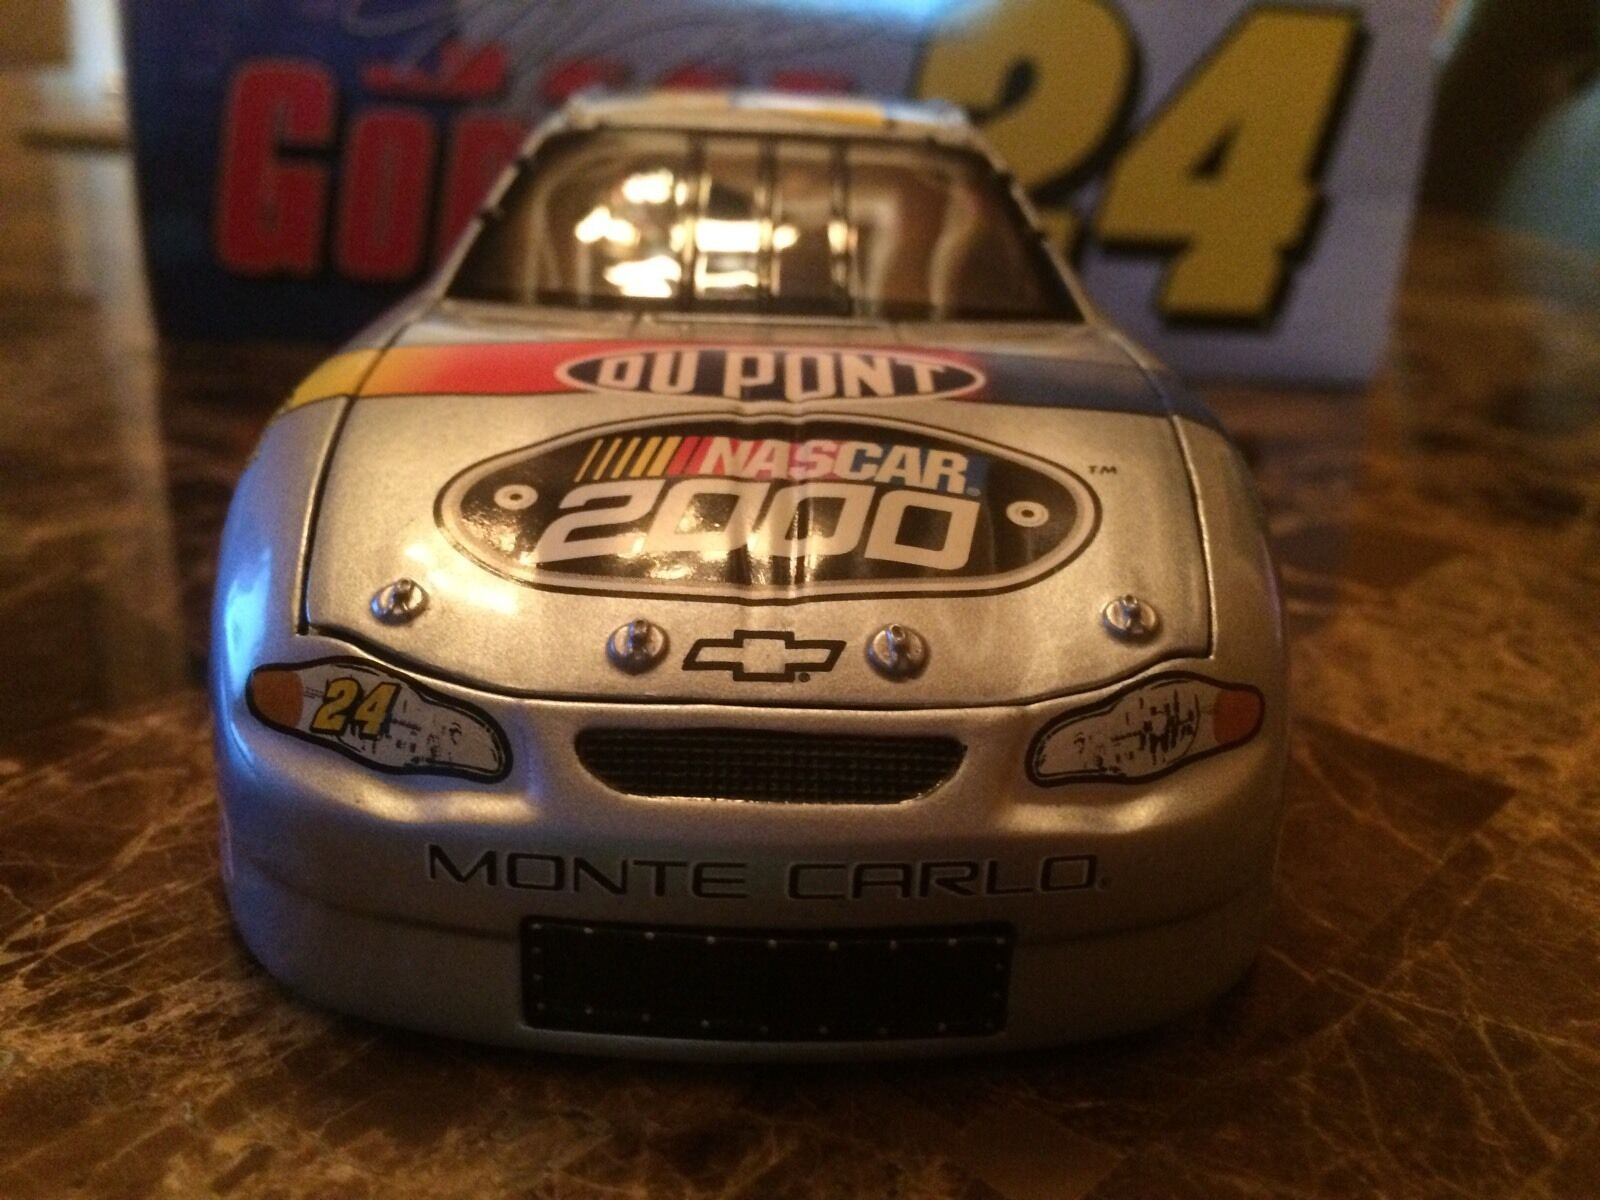 Used Cars Under $2000 Beautiful Jeff Gordon 24 2000 Dupont Monte Carlo Limited Edition